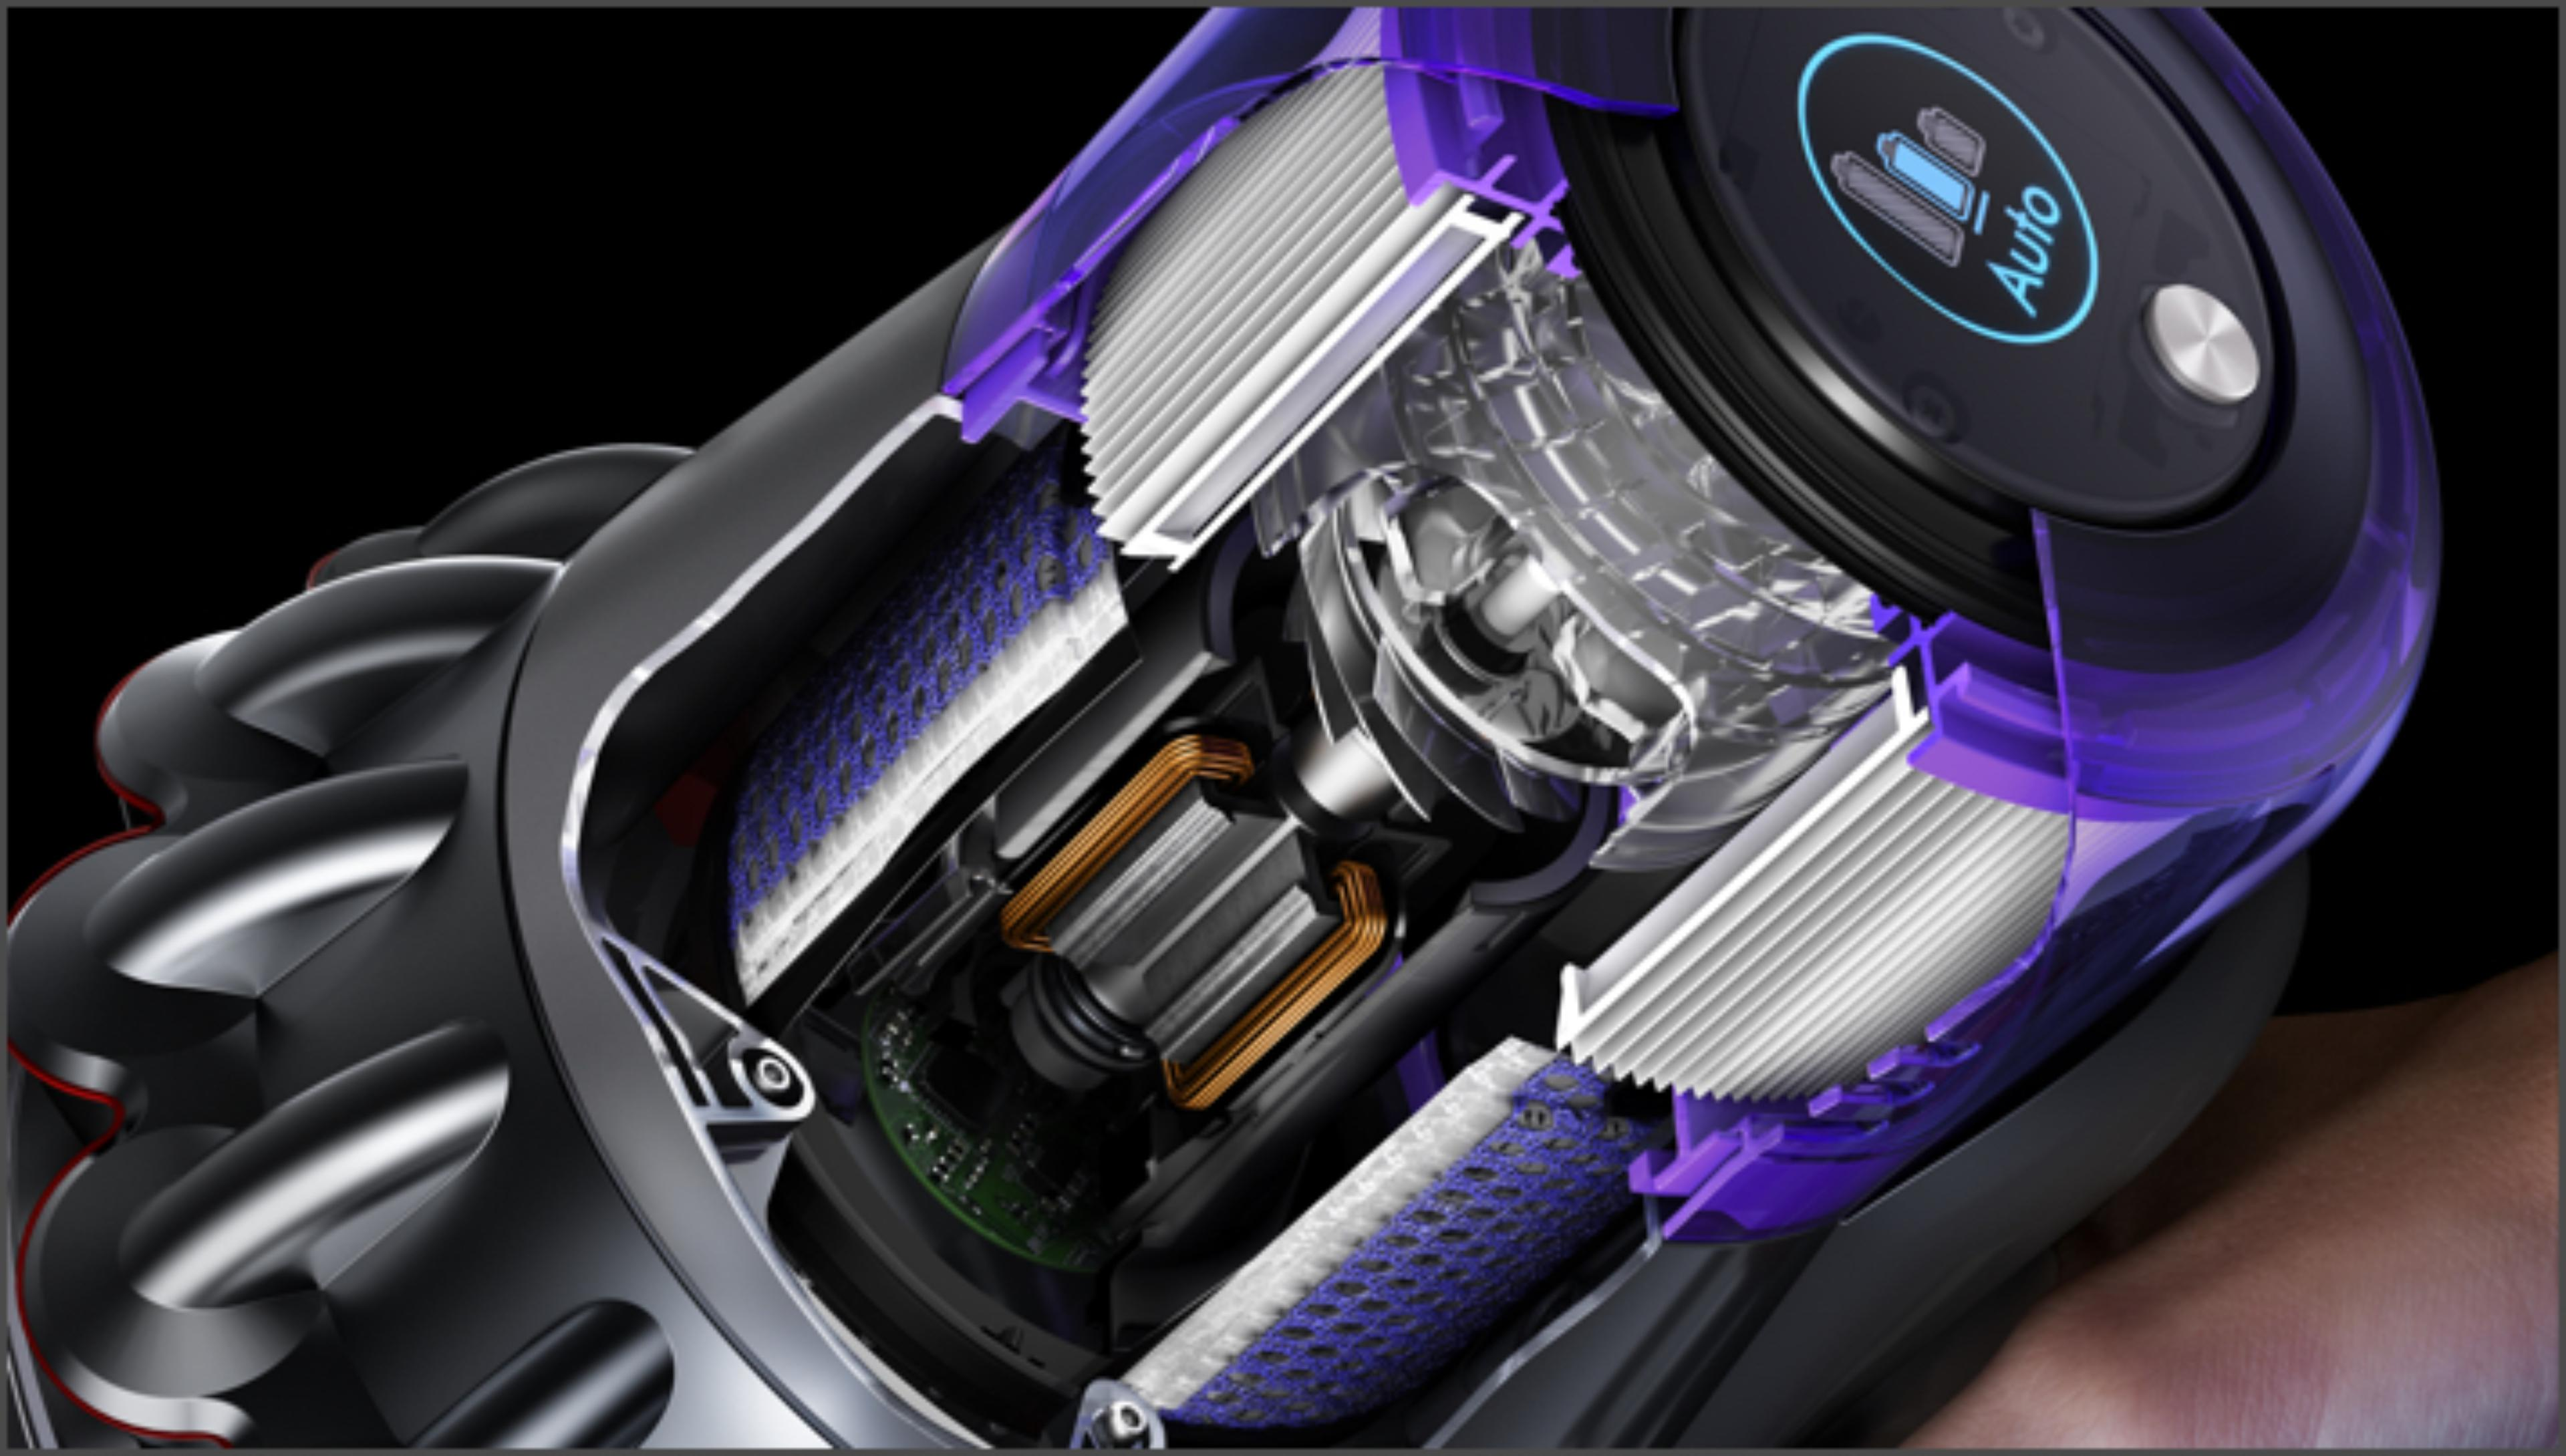 Cutaway of the Dyson V11 vacuum's motor